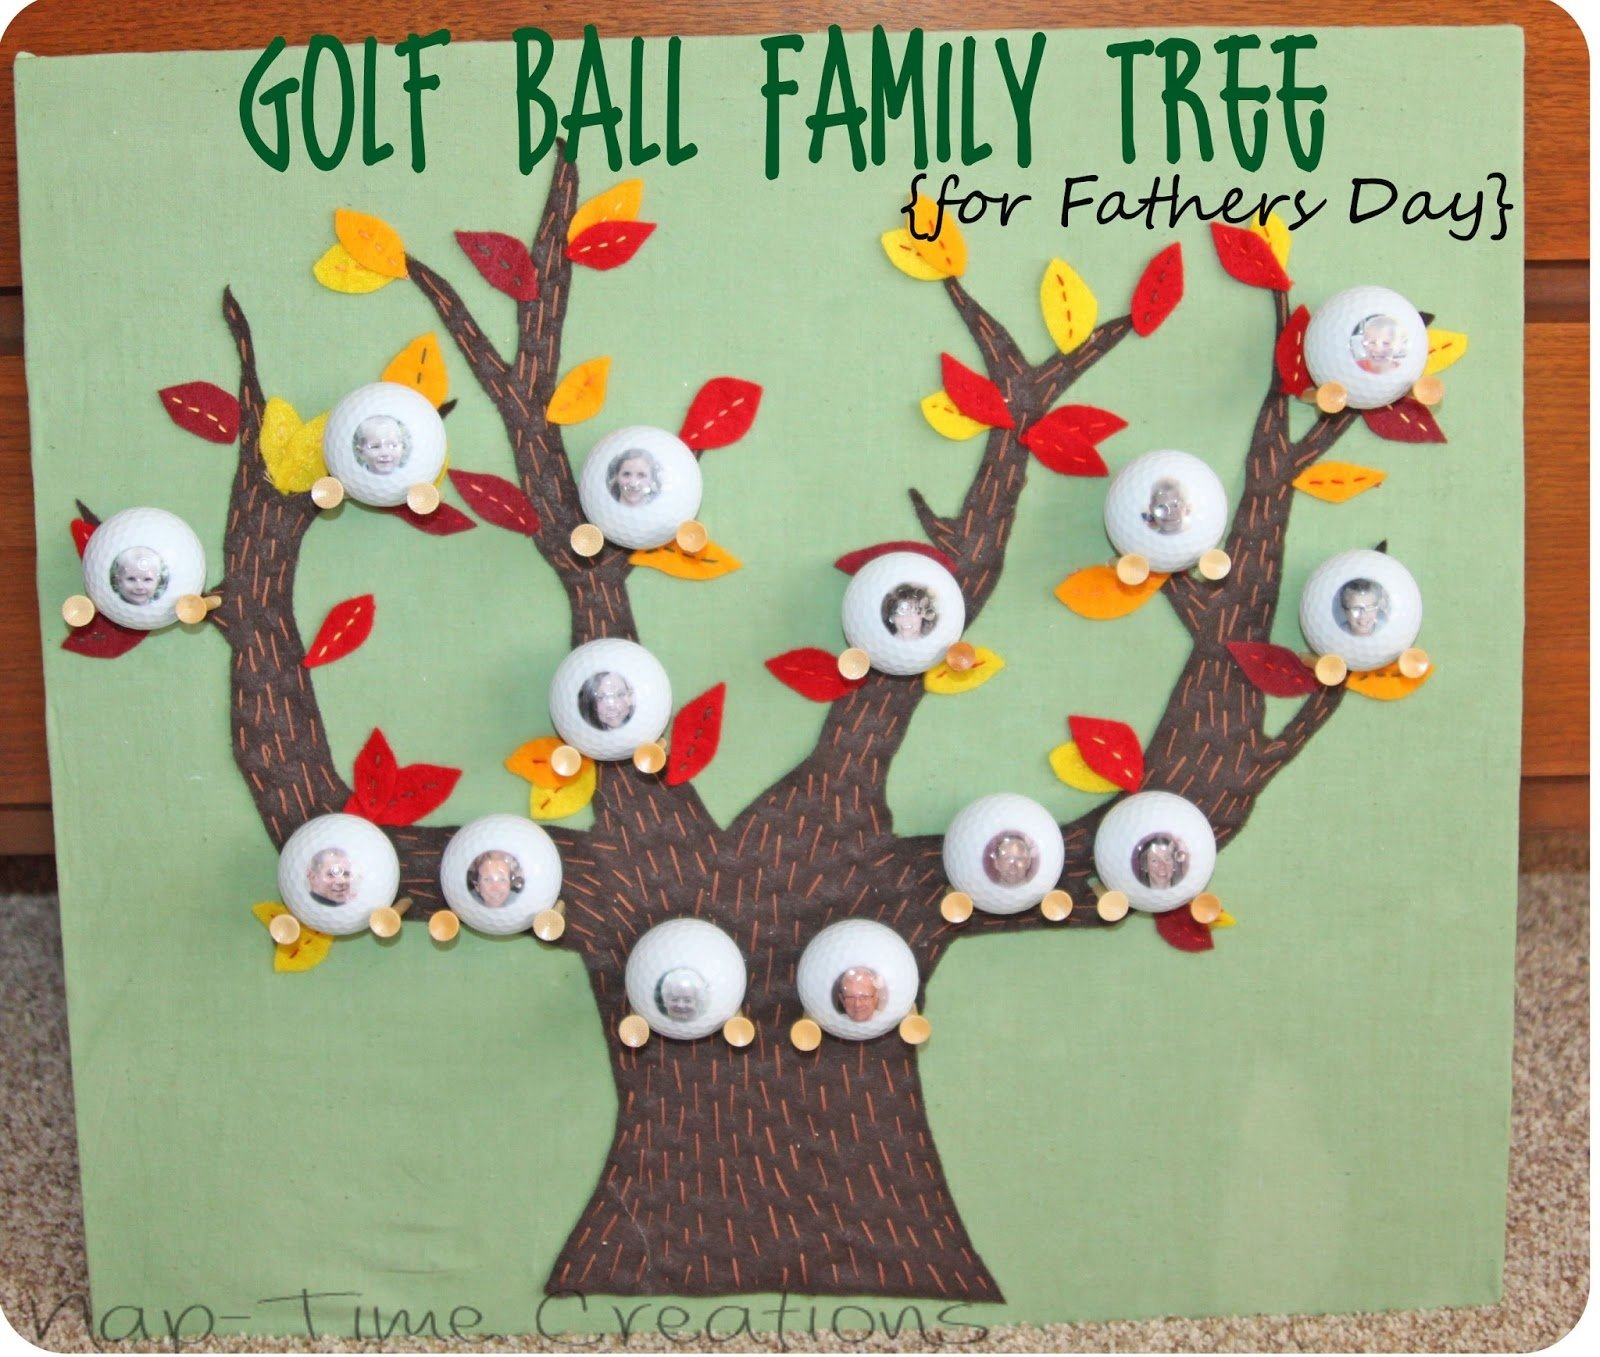 10 Stunning Family Tree Ideas For Kids golf ball family tree fathers day gift idea nap time creations 2